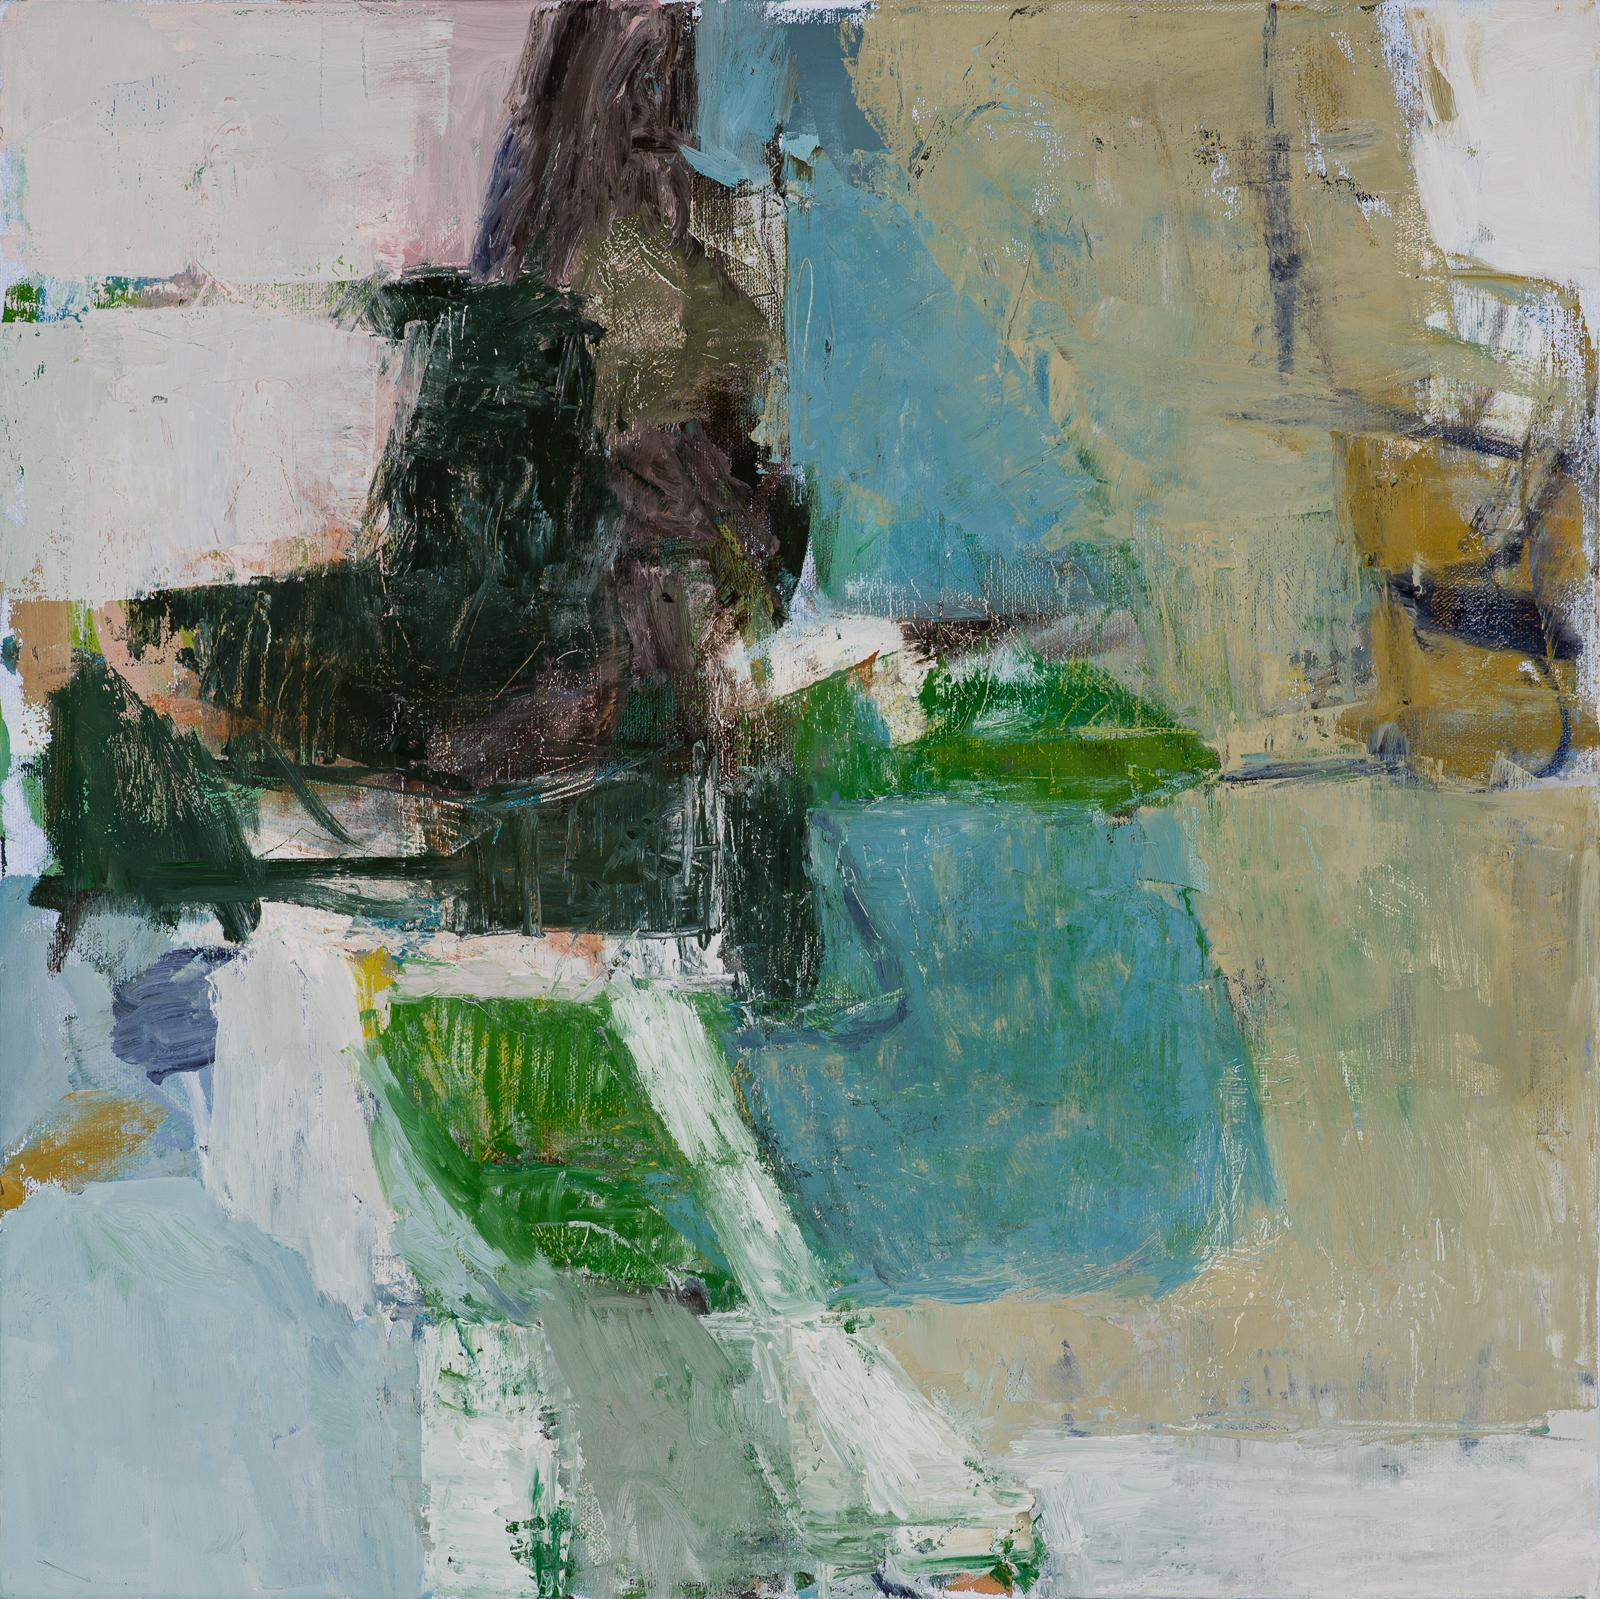 Nesting: Abstract Expressionist Painting on Canvas in Blue, Green, Black & Pink